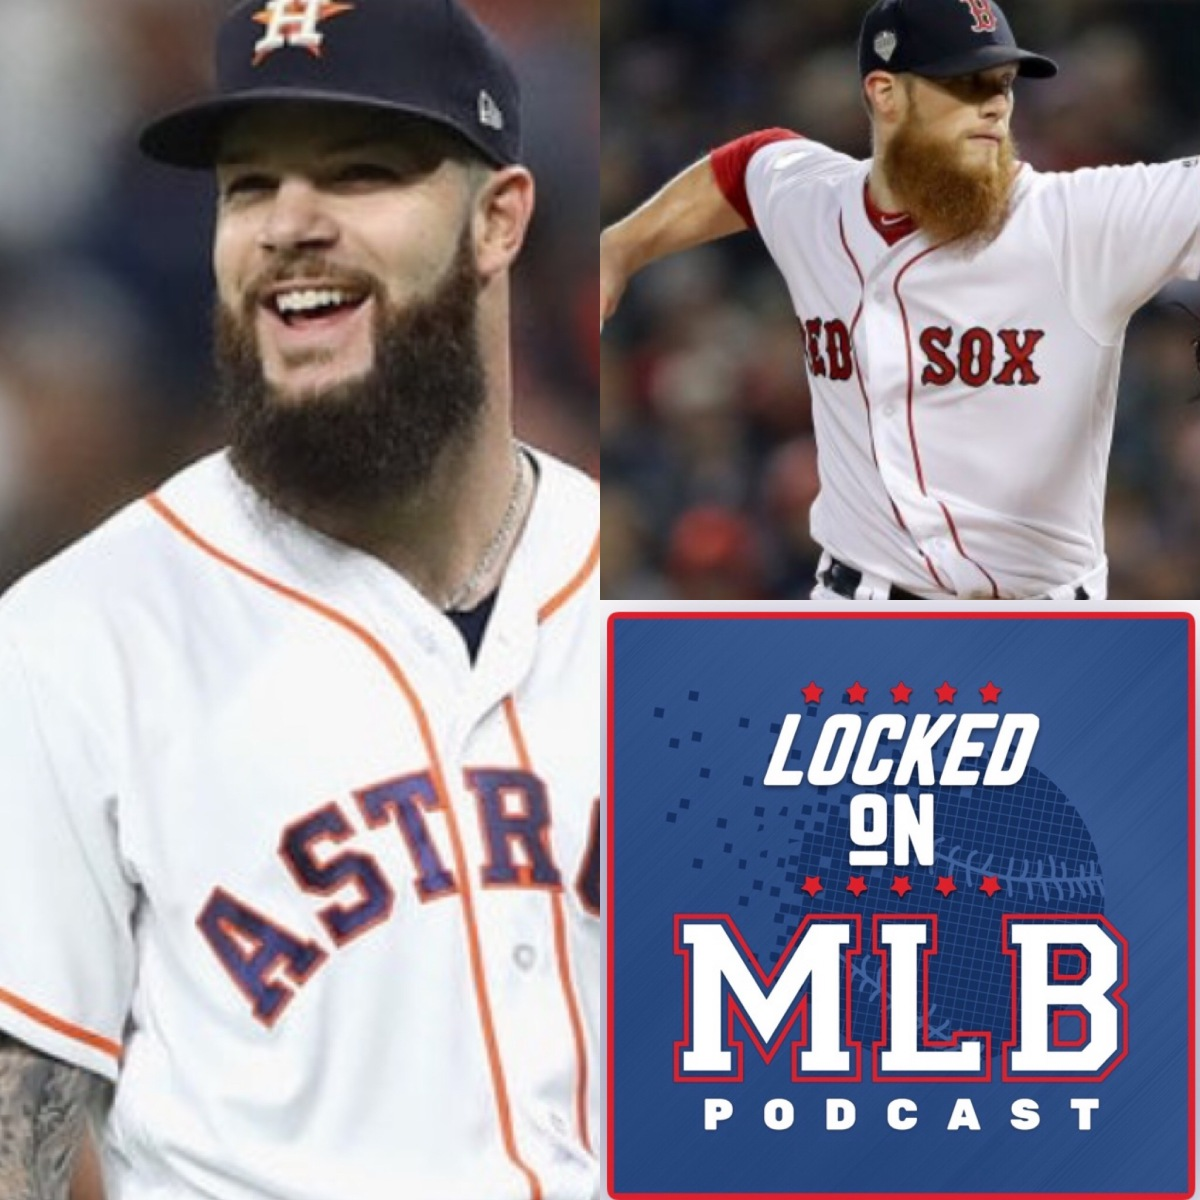 Depleted Pitching Staffs Need Reinforcements - @lockedonmlb Podcast for April 17, 2019